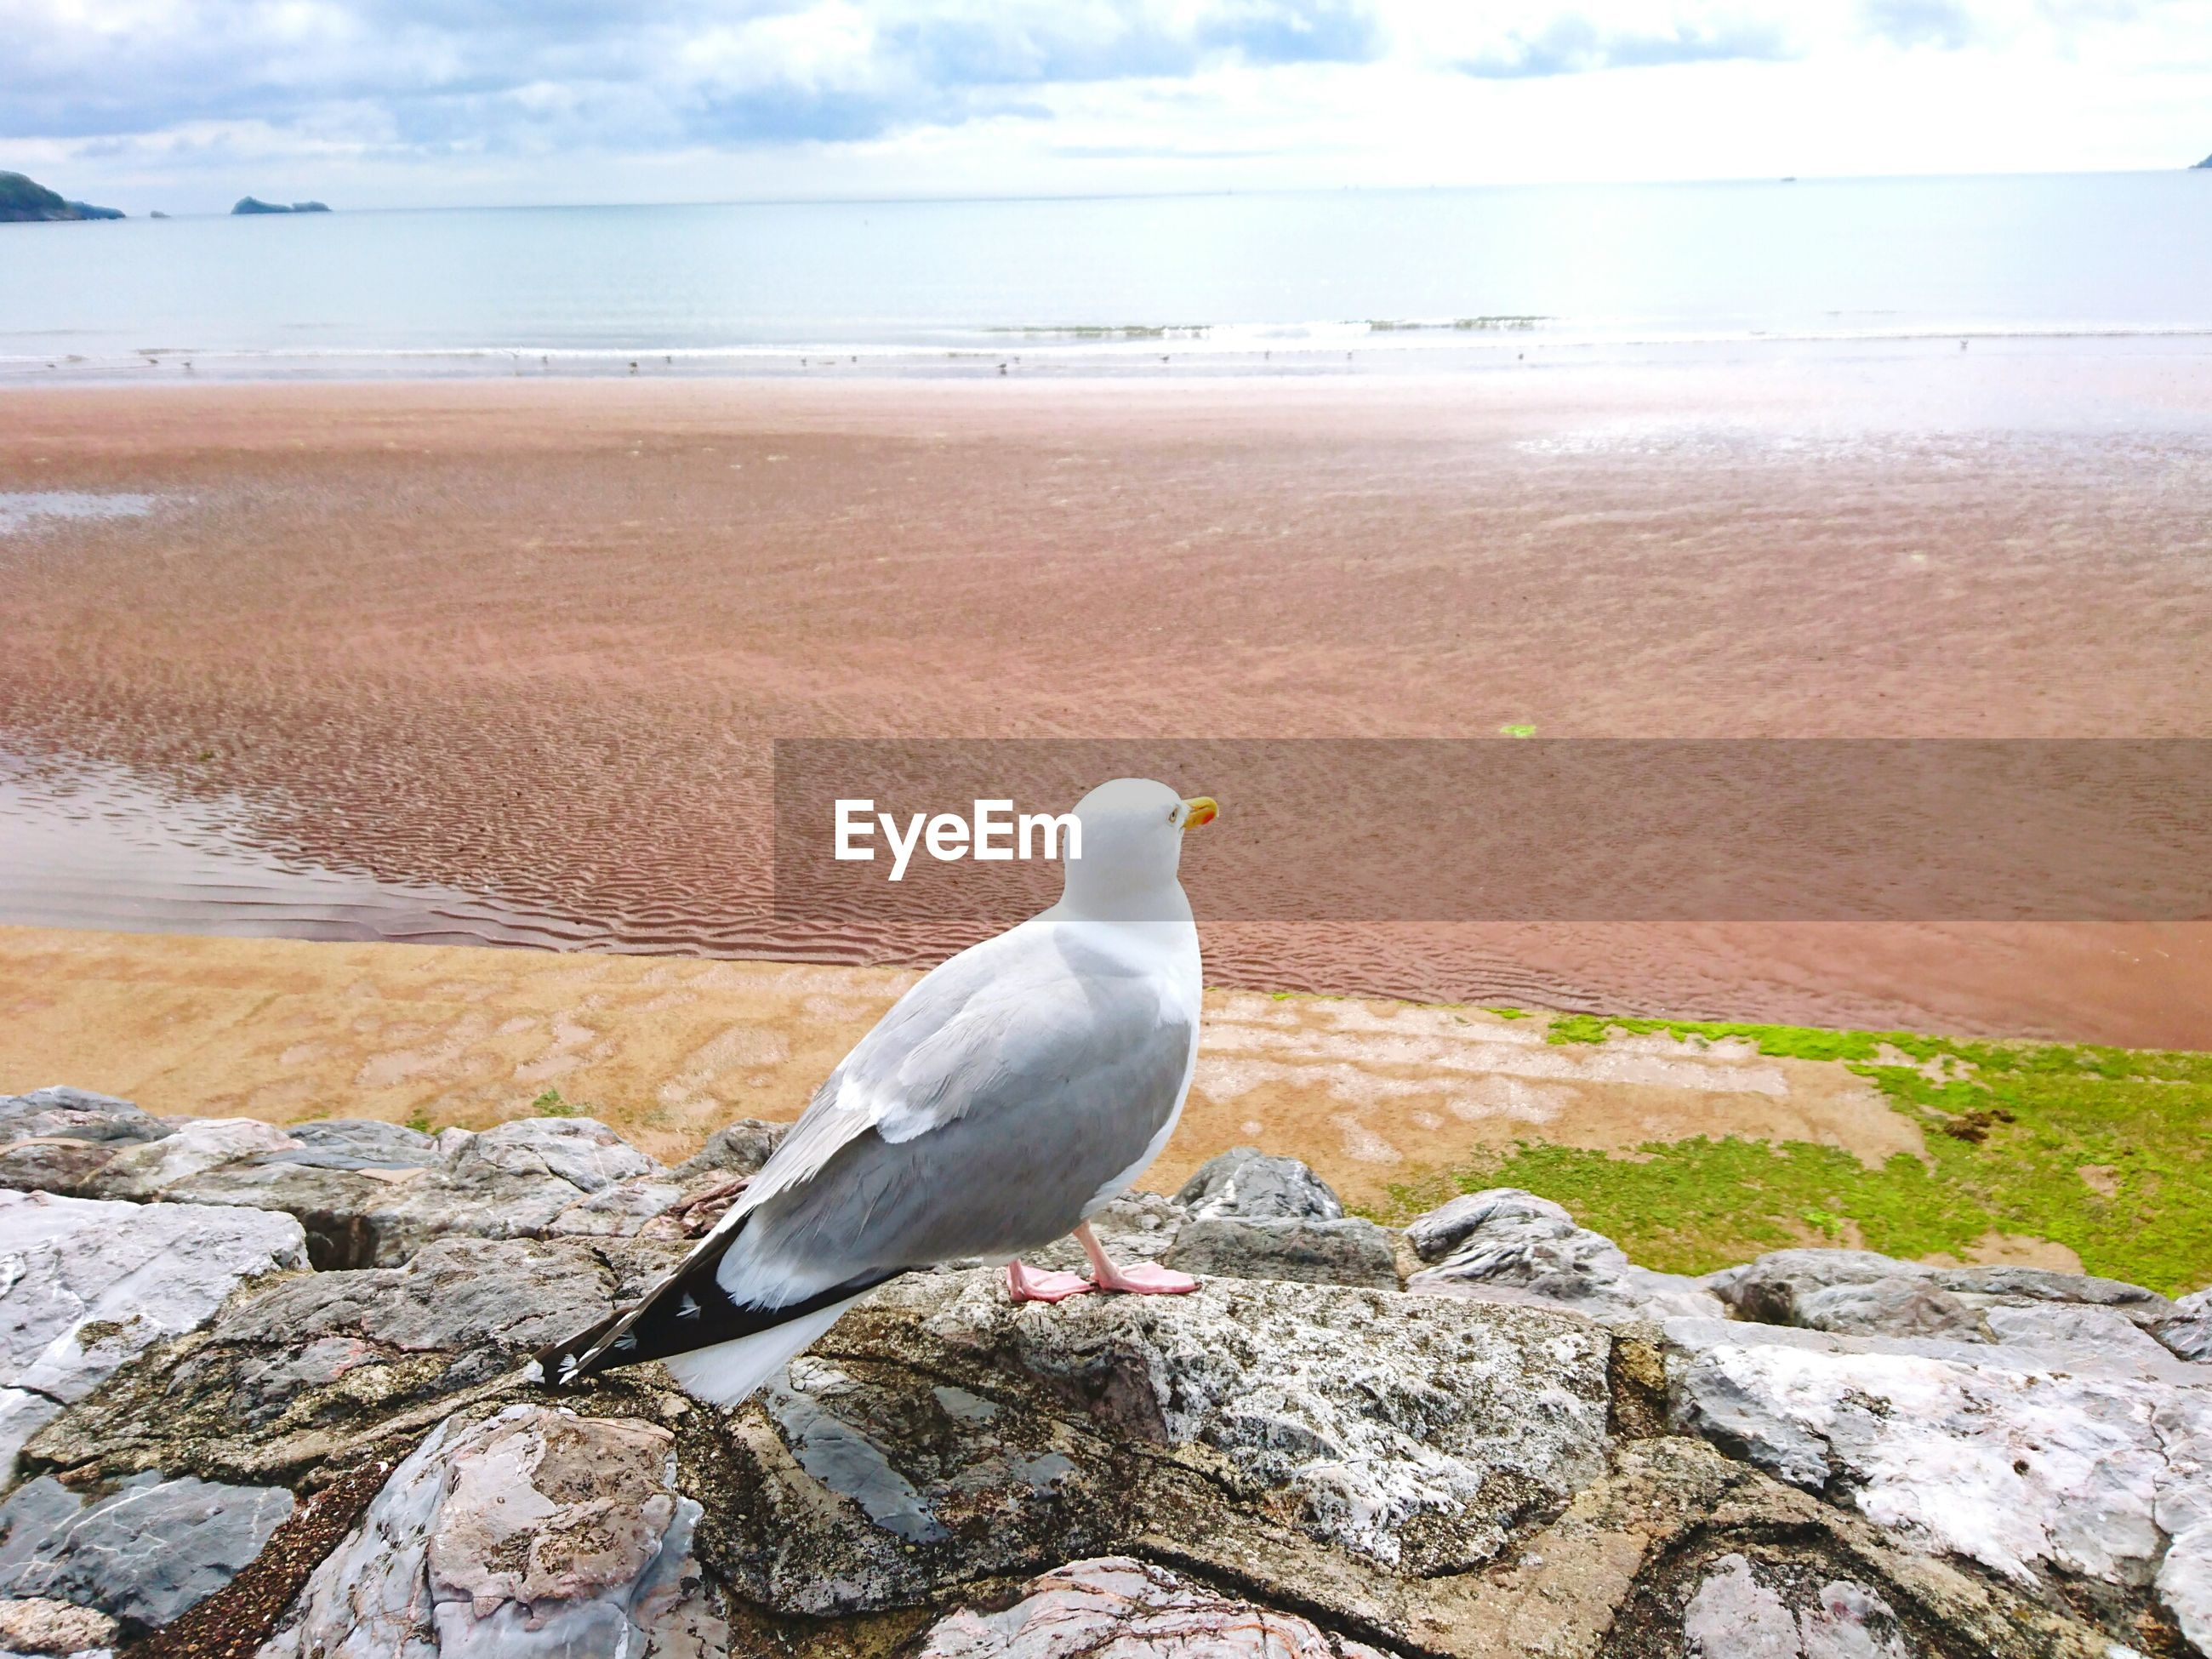 Seagull perching on rock at beach against sky